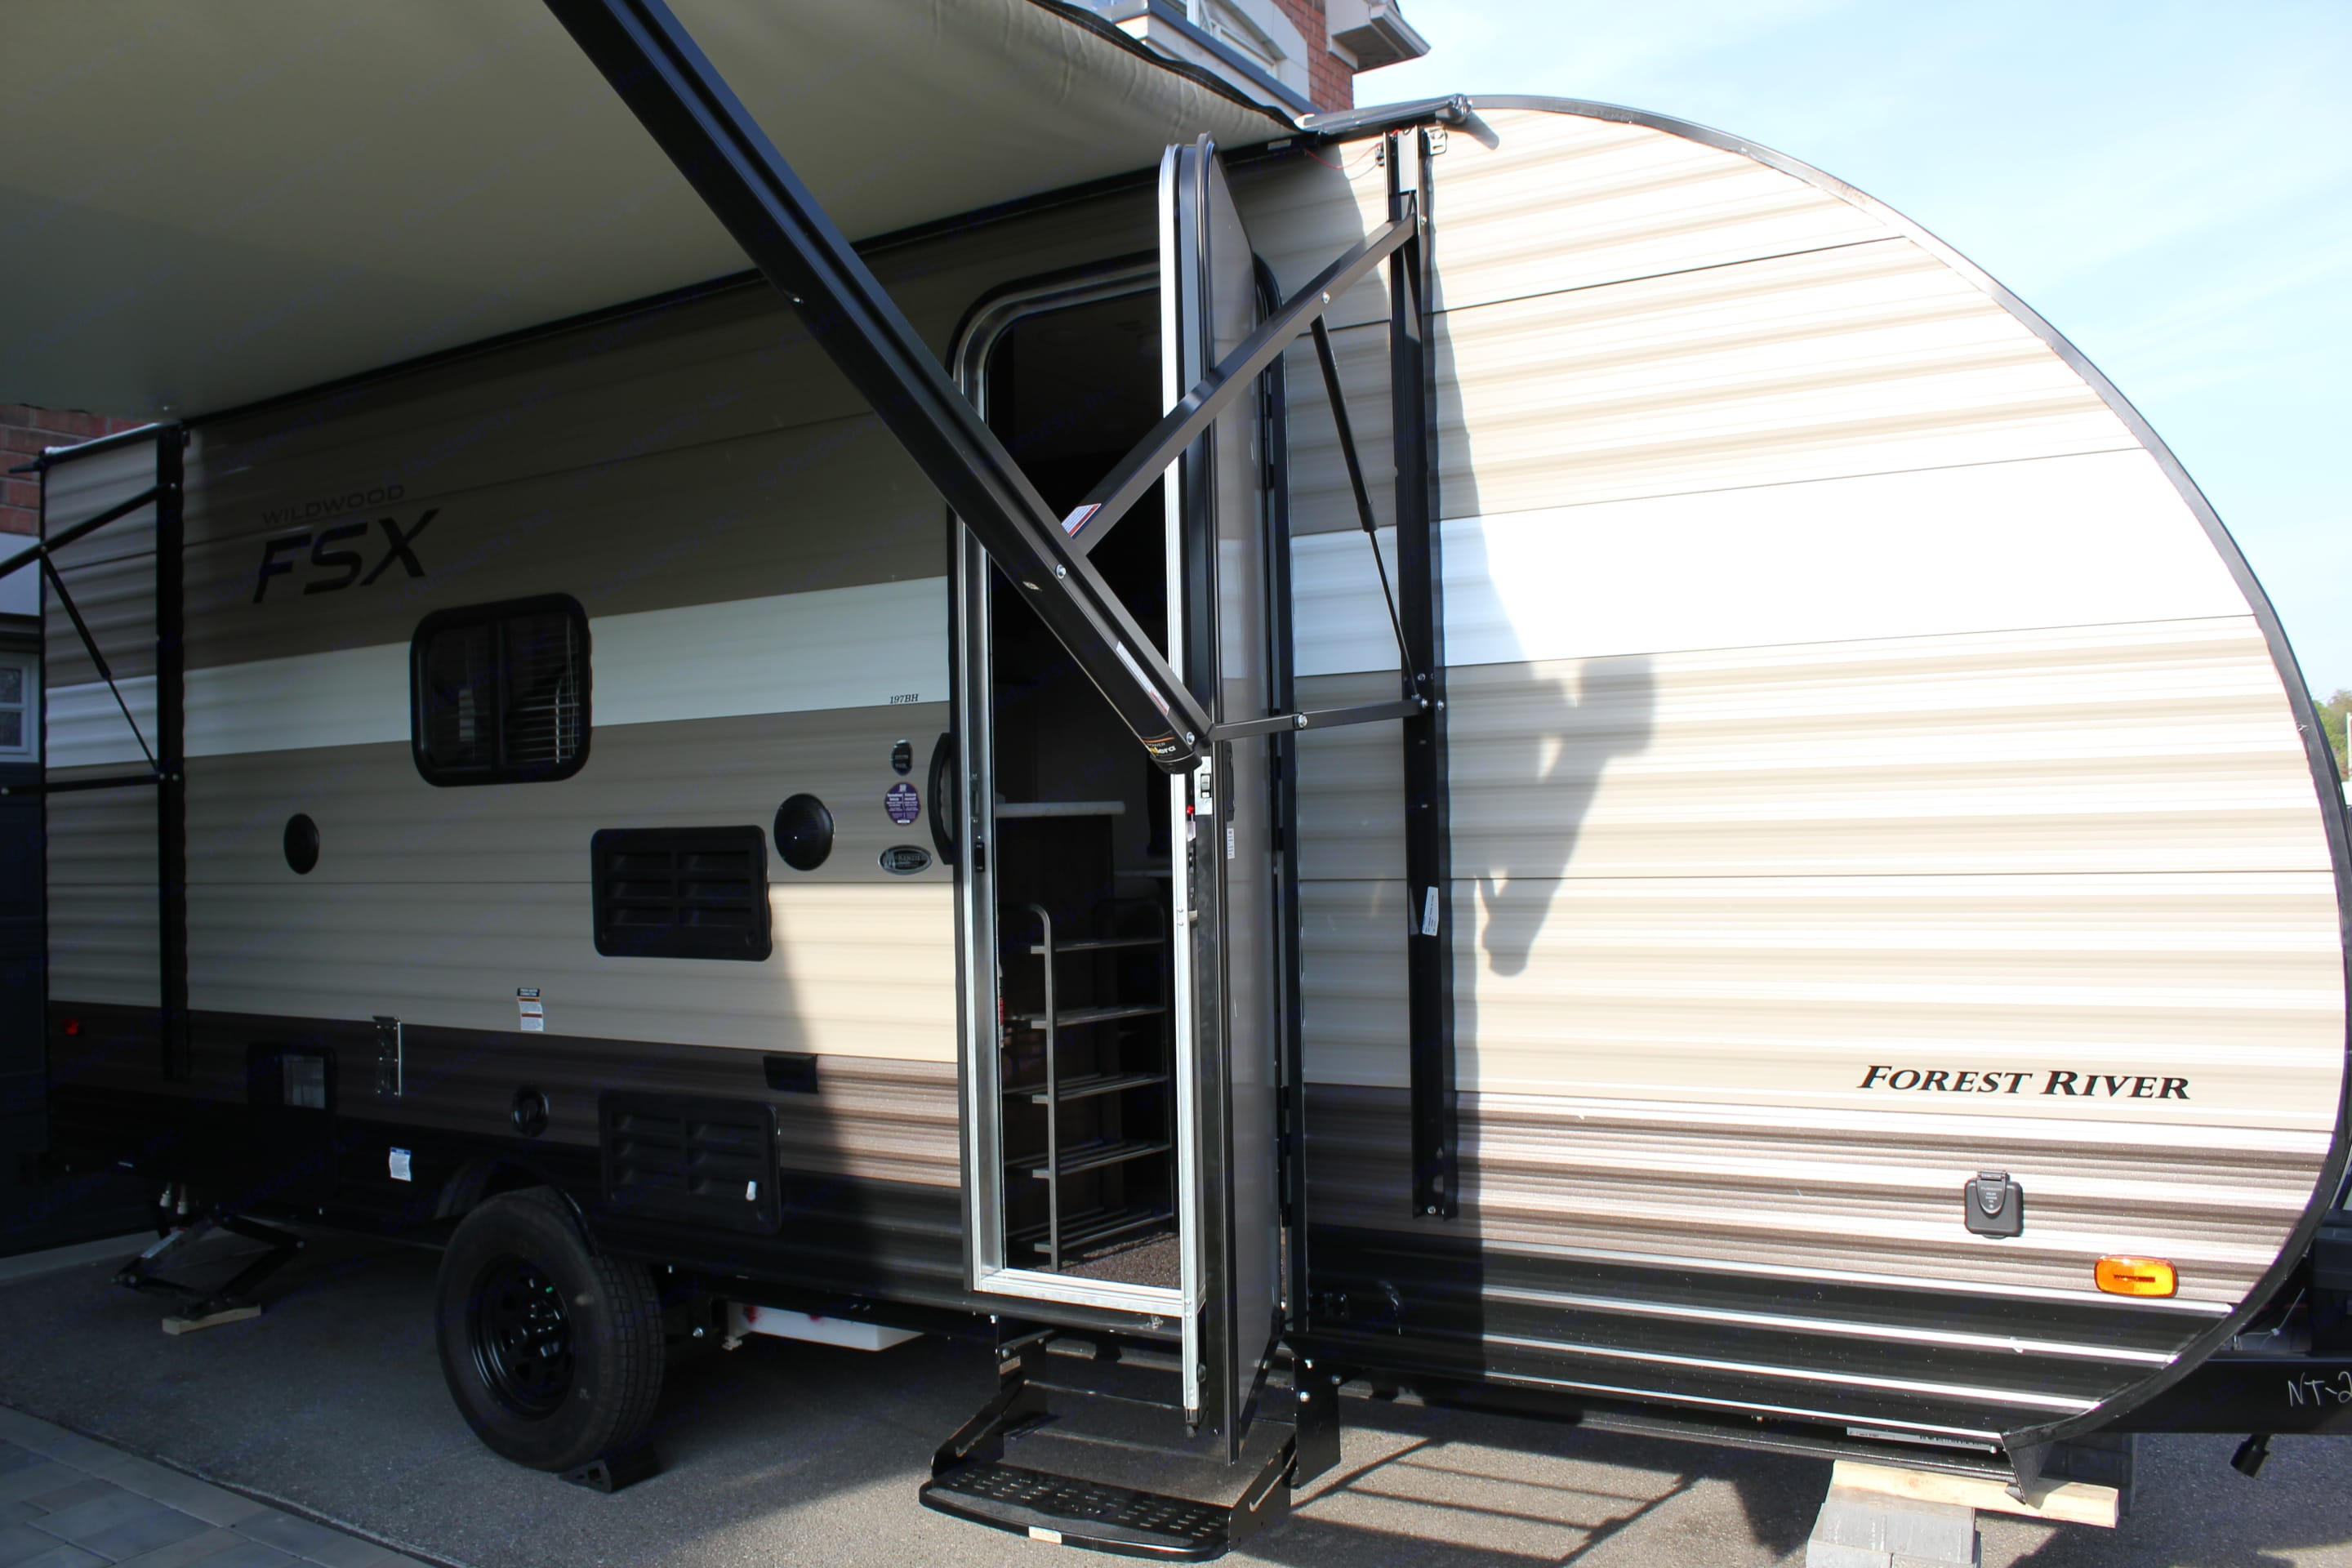 At 22' and 2991 lbs, this trailer can be towed with a minivan if adequately equipped. The awning opens to 8ft for nice coverage and a comfortable place to relax under.   Exterior speakers means you can eat, relax and listen to your favorite tunes from AM/FM radio or connect  your phone with Bluetooth.. Forest River Wildwood 2018